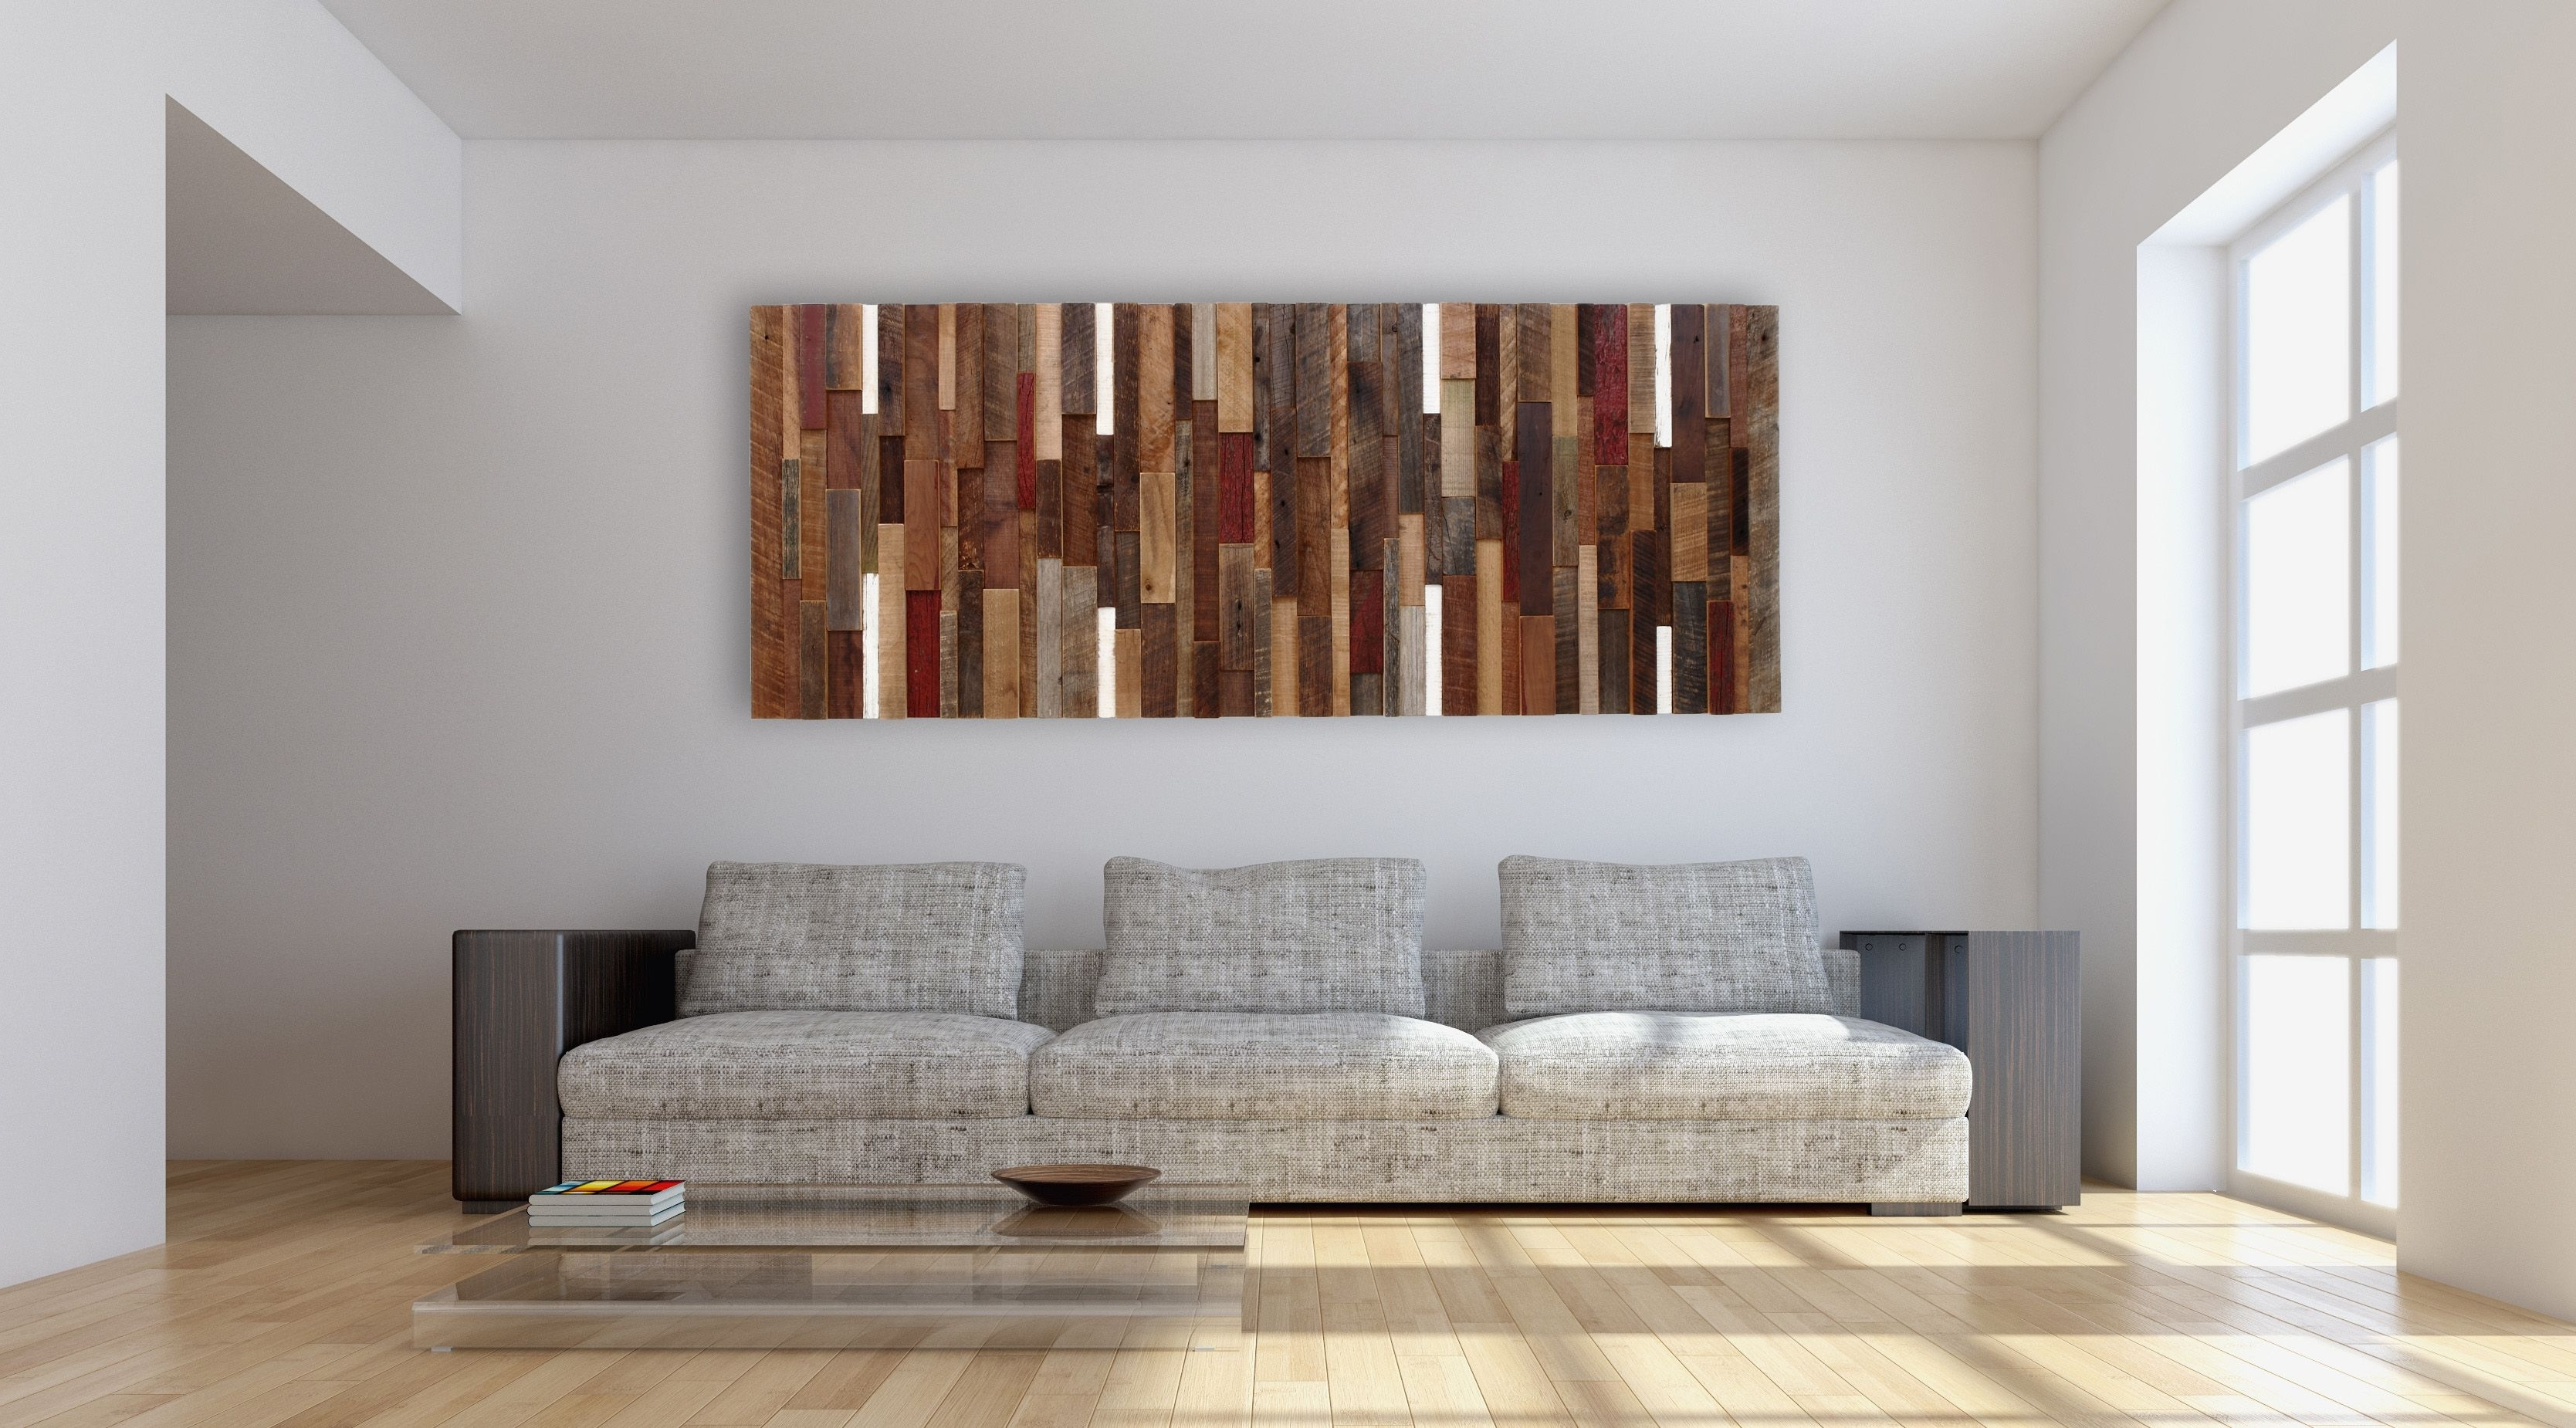 Hand Made Reclaimed Wood Wall Art, Made Intirely Of Reclaimed Barn Within Latest Wall Art On Wood (View 3 of 15)